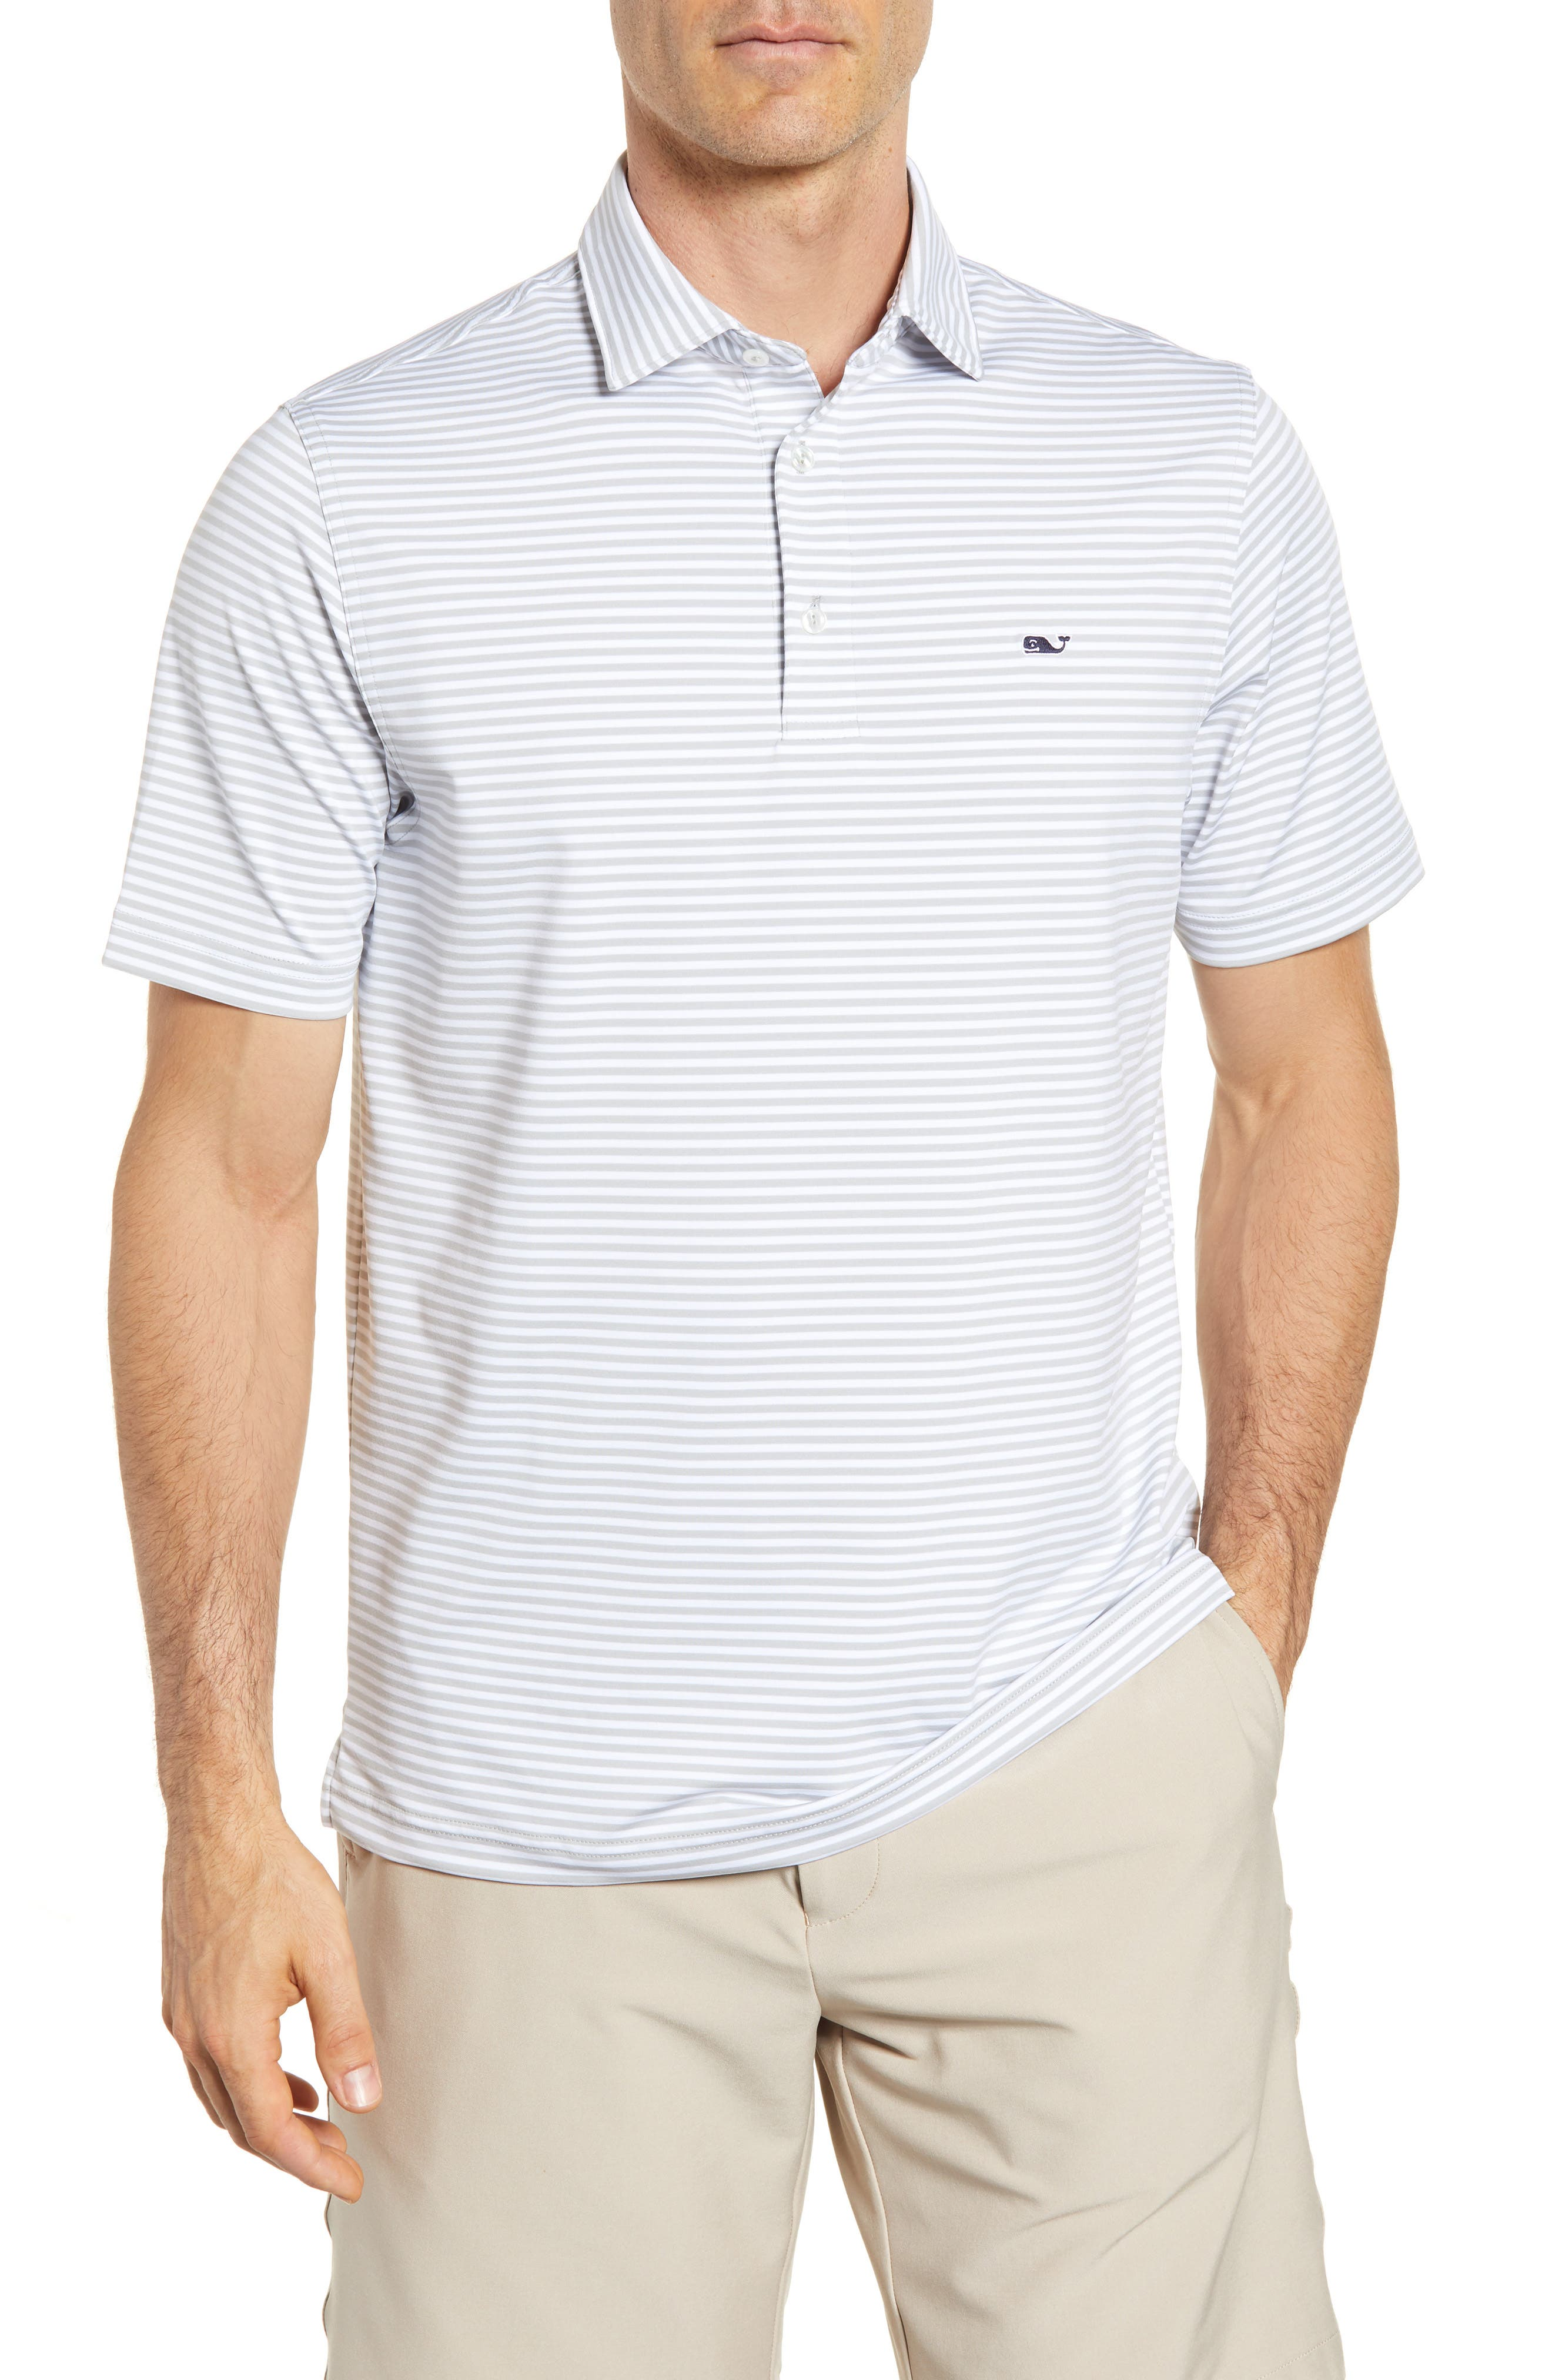 Alternate Image 1 Selected - vineyard vines Color to White Feeder Stripe Polo